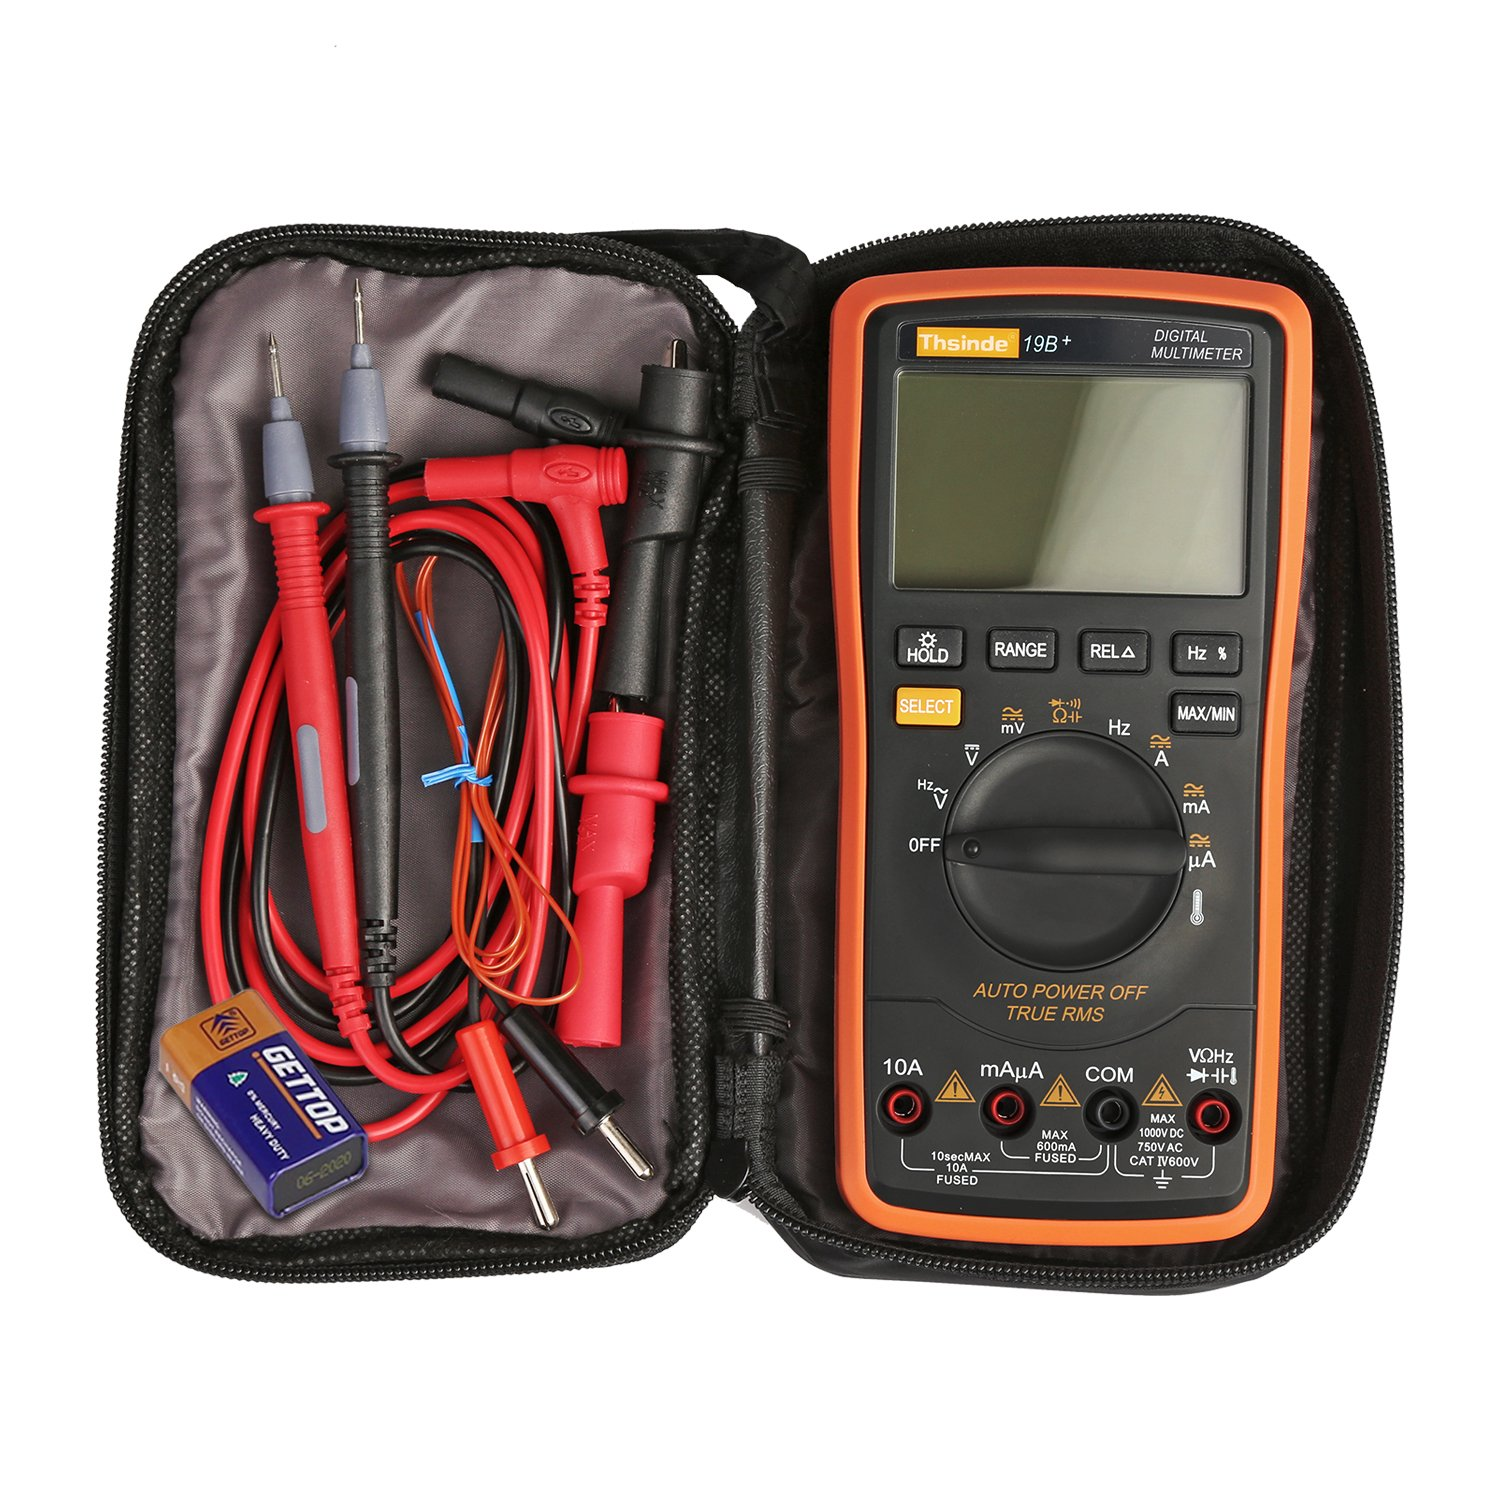 Thsinde Auto Ranging Digital Multimeter, Measures,Voltage, Current,  Resistance, Continuity, Capacitance, Frequency, tests Diodes Transistors,